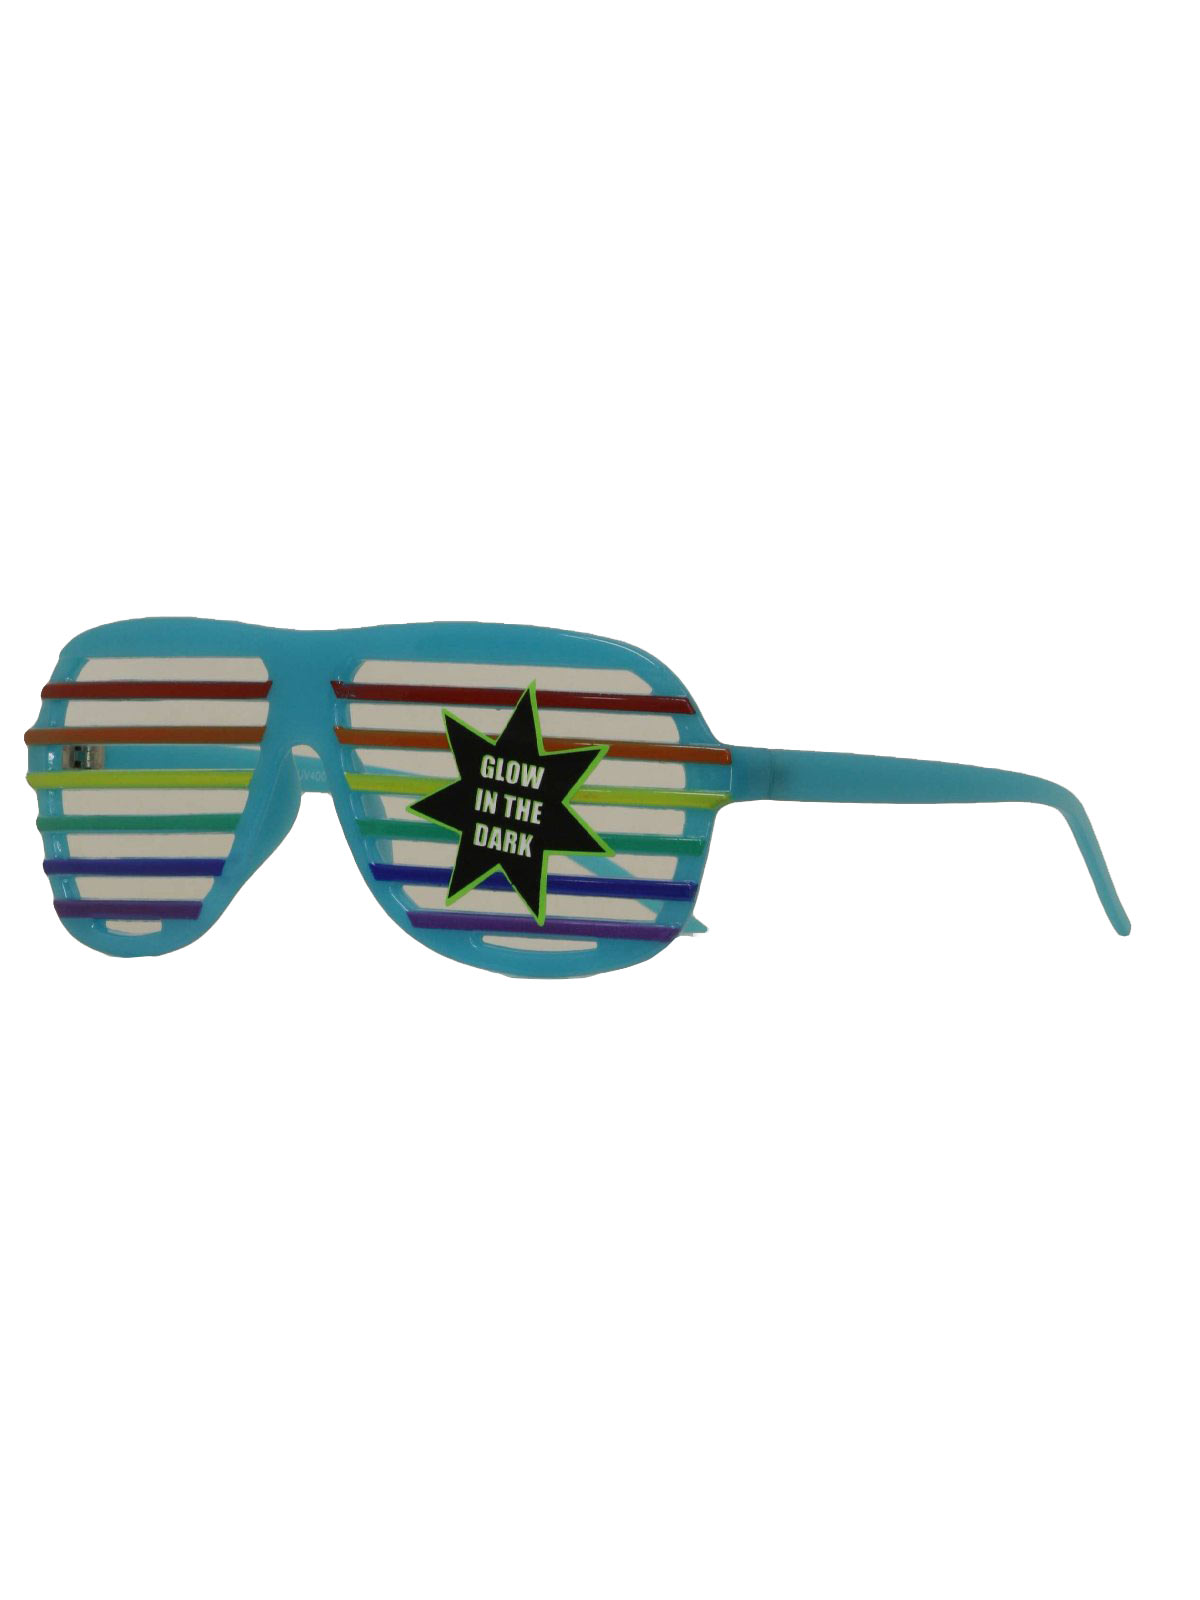 Shades Sunglasses  glow in the dark eighties vintage glasses 80s style glow in the